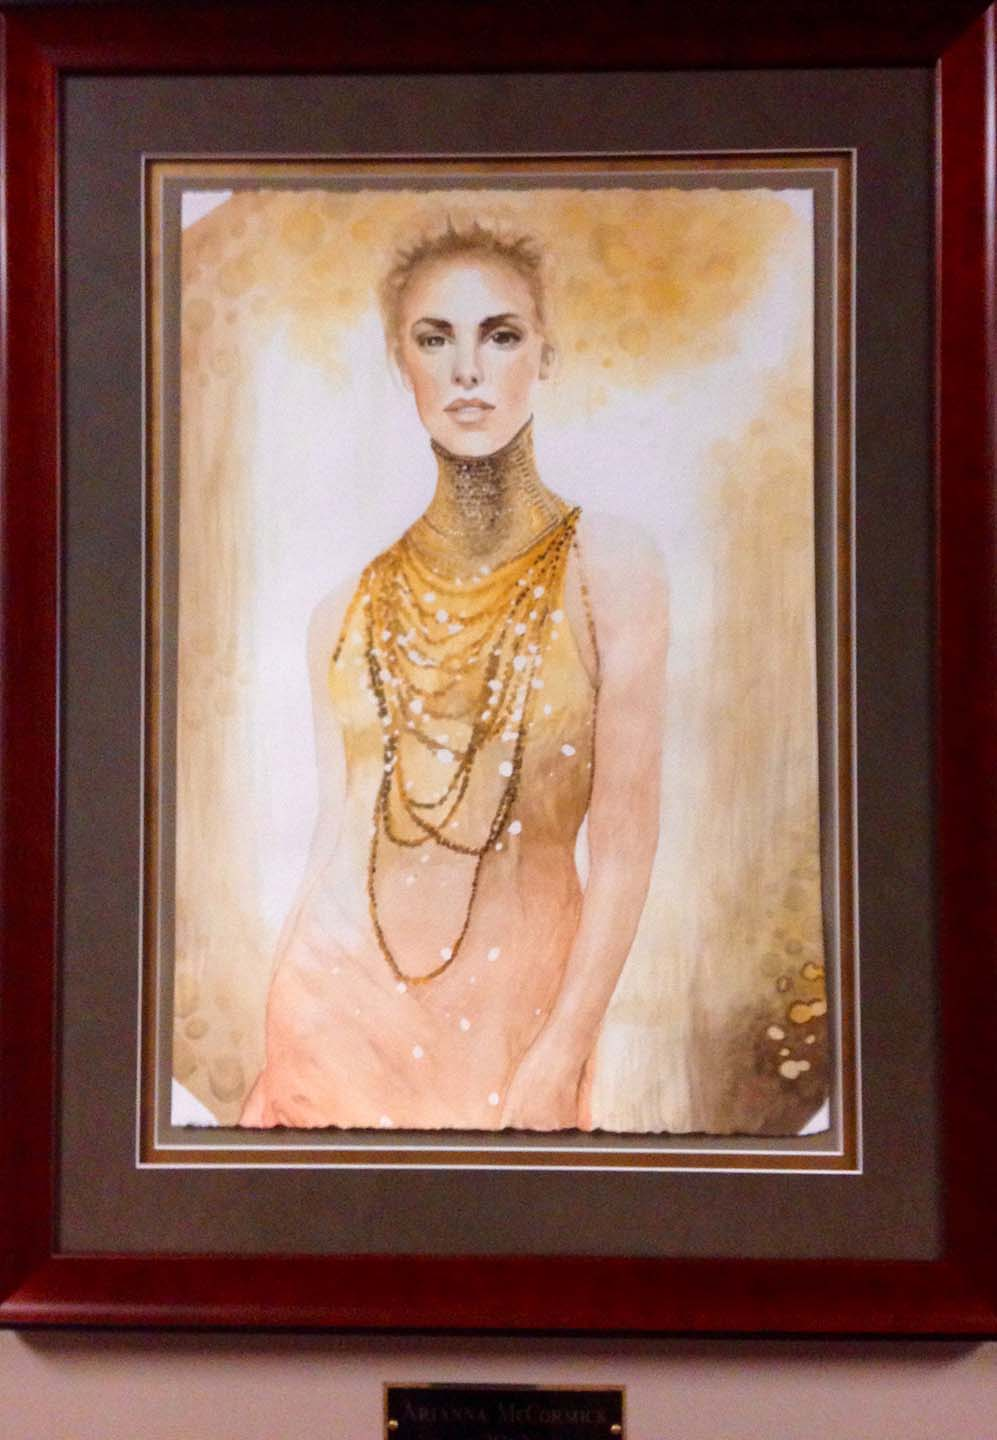 Artwork Female Model with Gold Necklaces